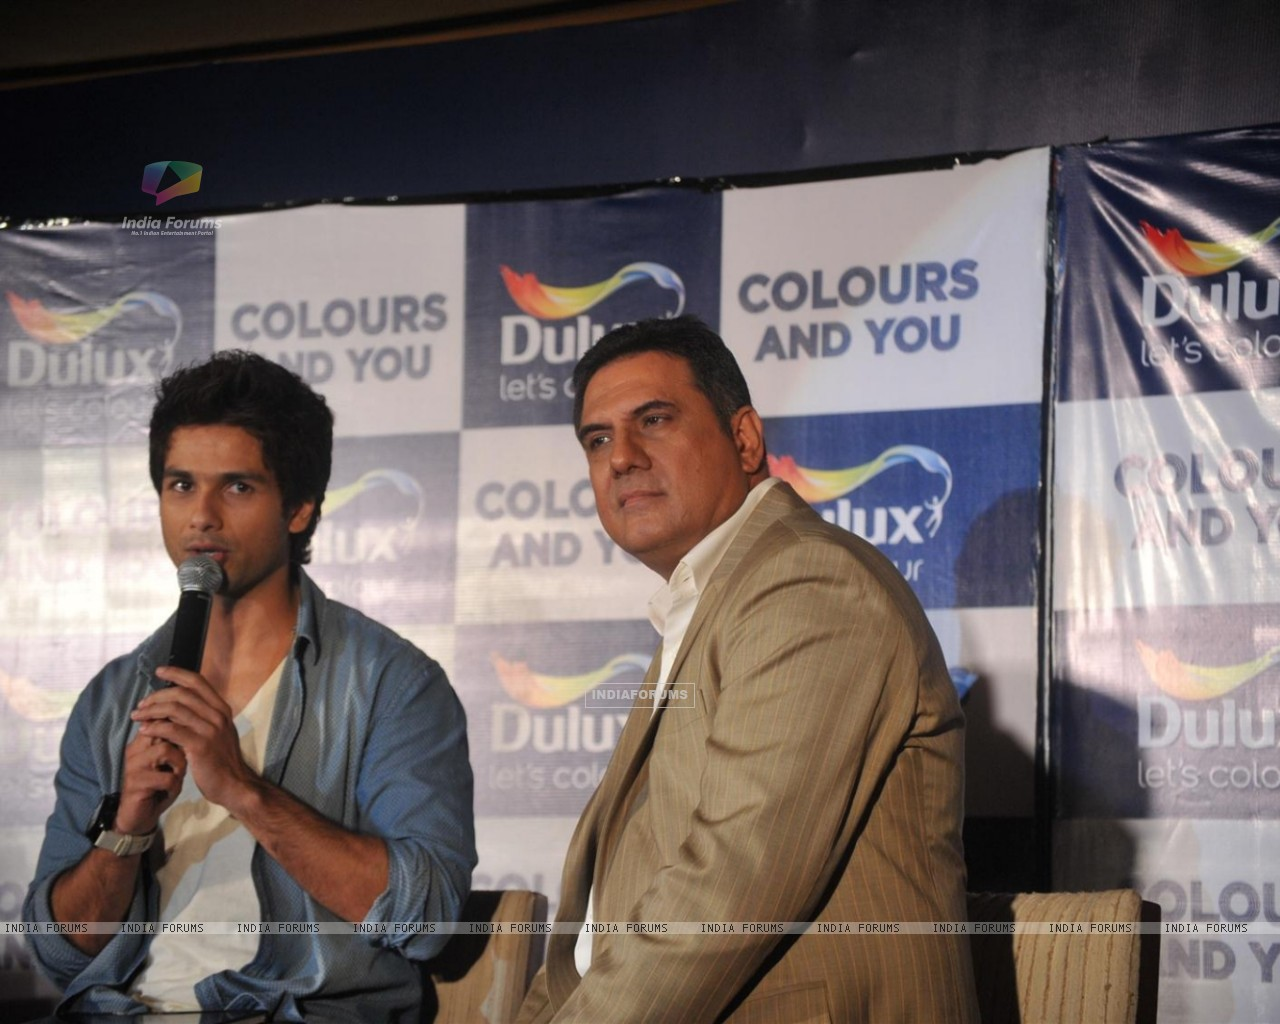 Shahid and Boman Irani at Dulux let's colour event (216929) size:1280x1024